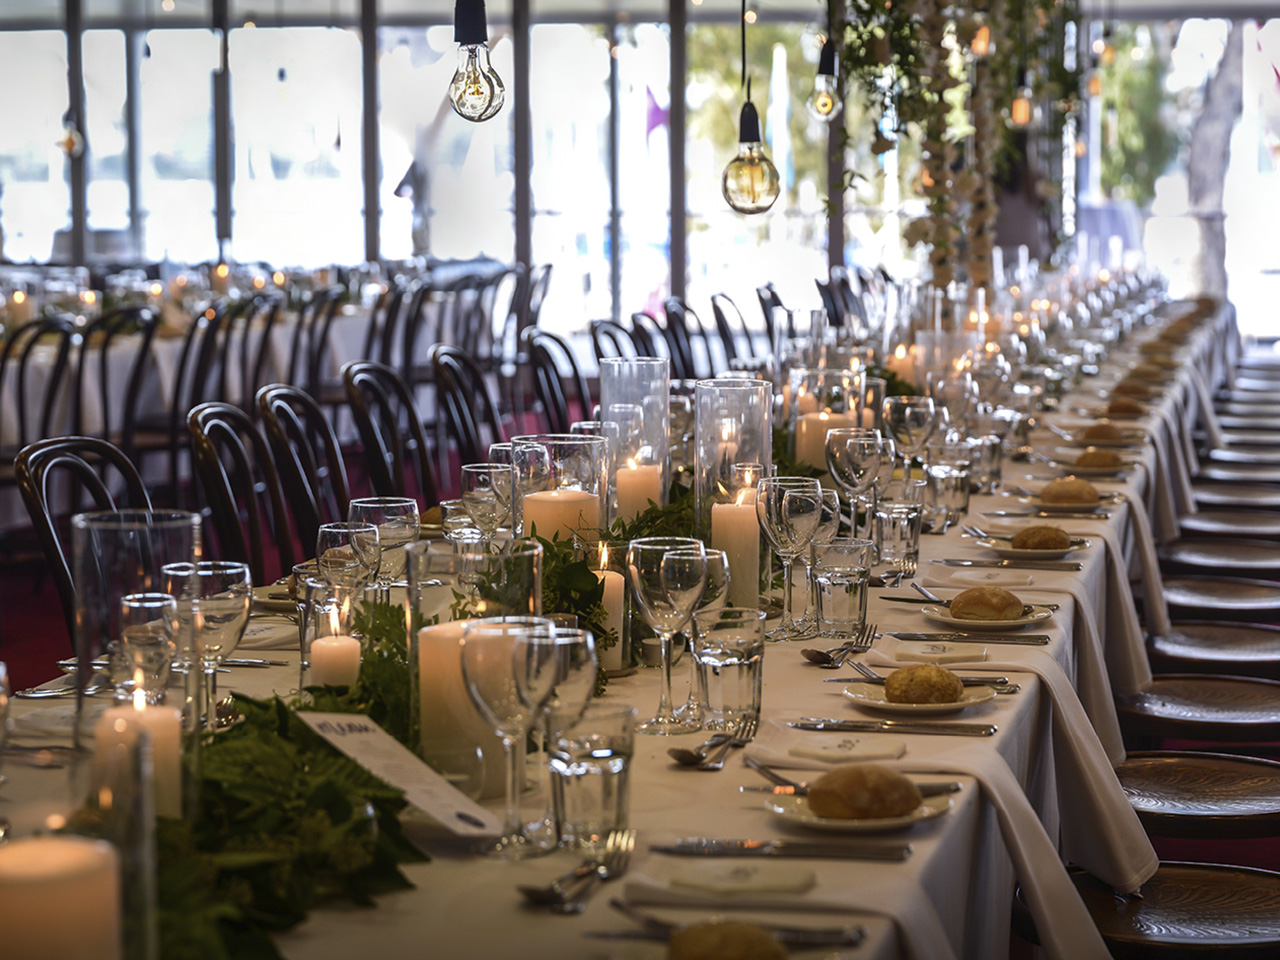 Long Table Setup With Hanging Lights, Candle Lit, Greenery Centerpieces and Wine Glasses